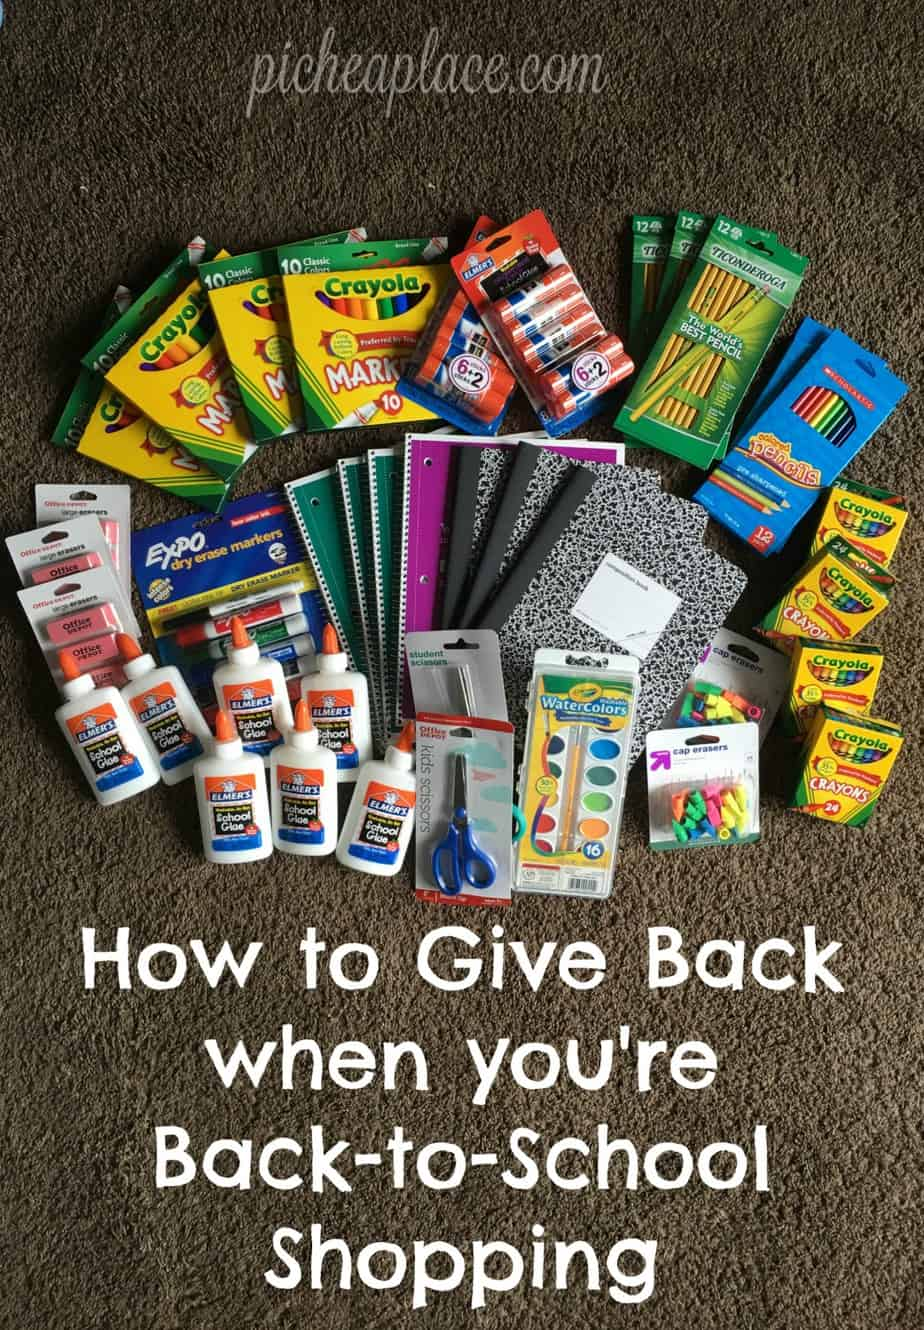 There are many ways to give back when you are back-to-school shopping this year... here is one of our favorite ways!